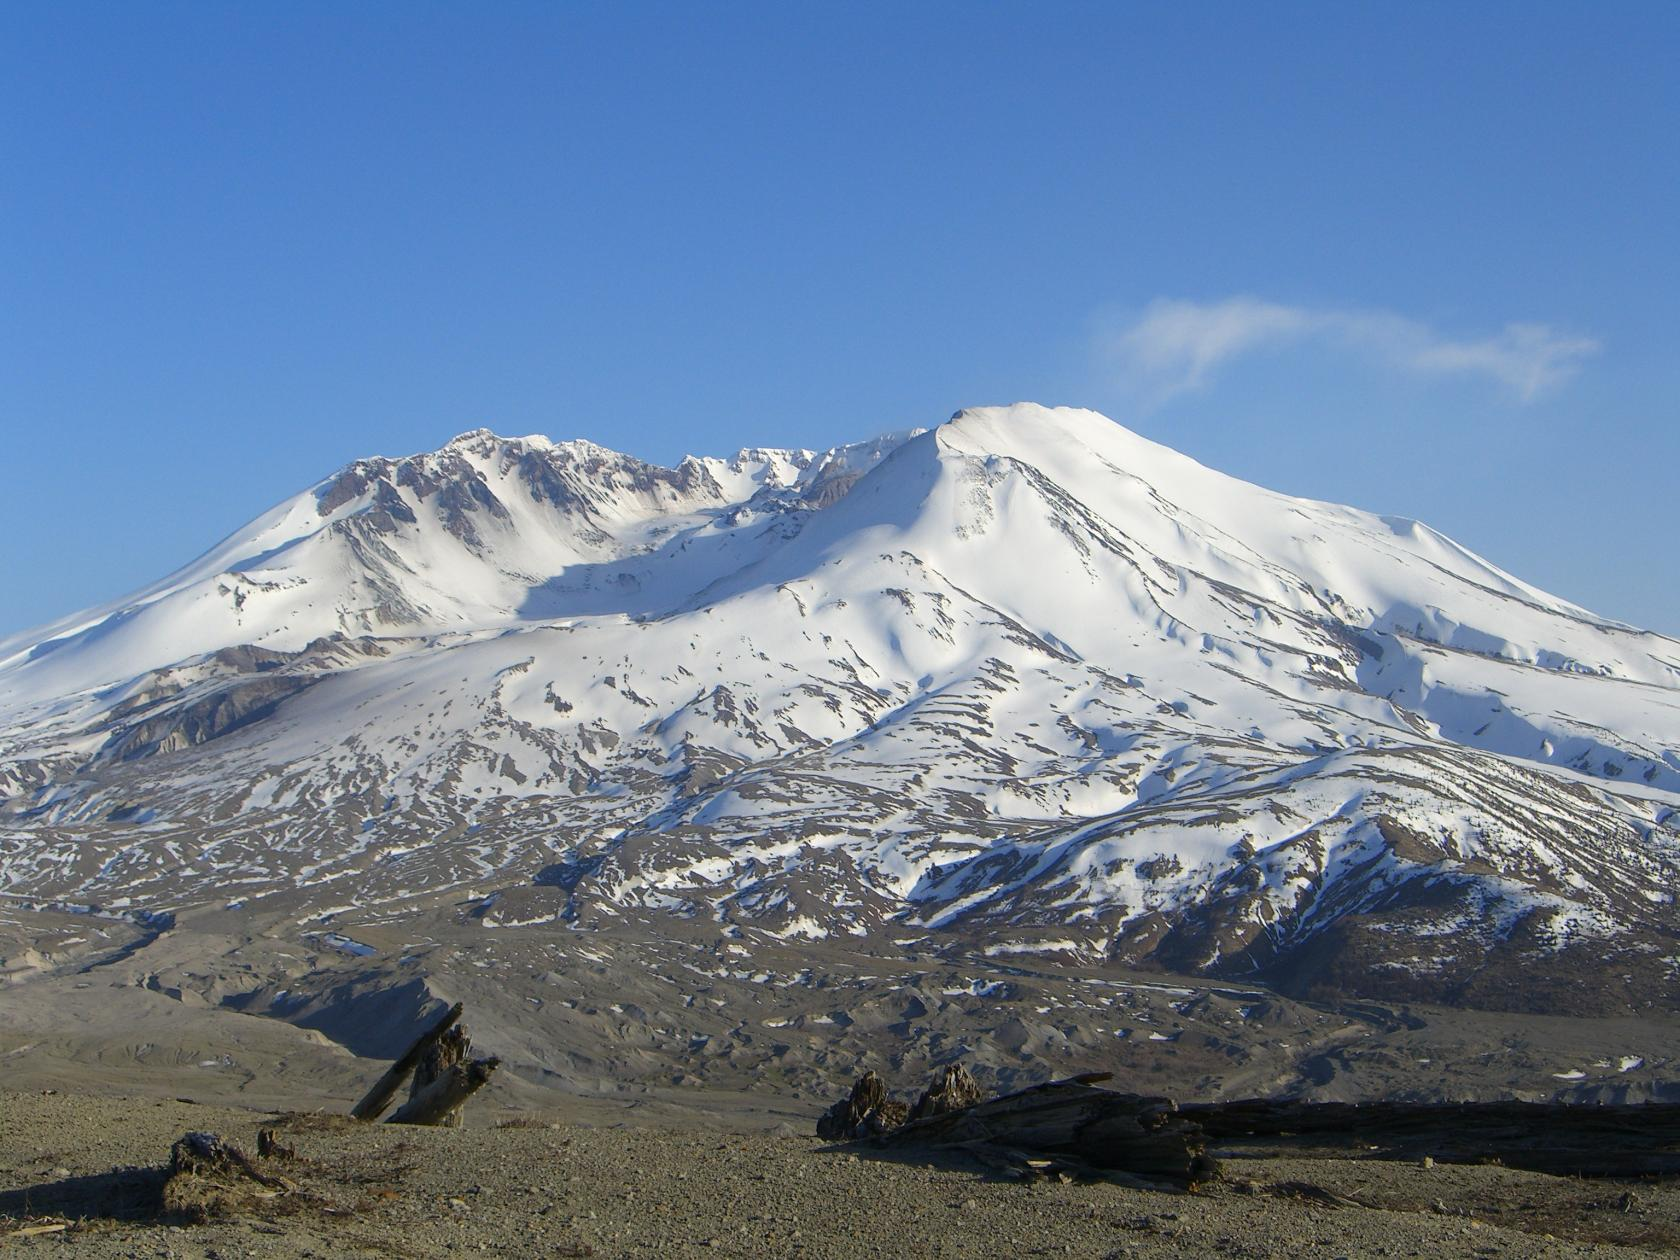 mount st helens essay Elk at mount st helens - thousands of elk live have returned to the landscape around mount st helens snowkiting - take a snowboard, give it wings, and you've got.